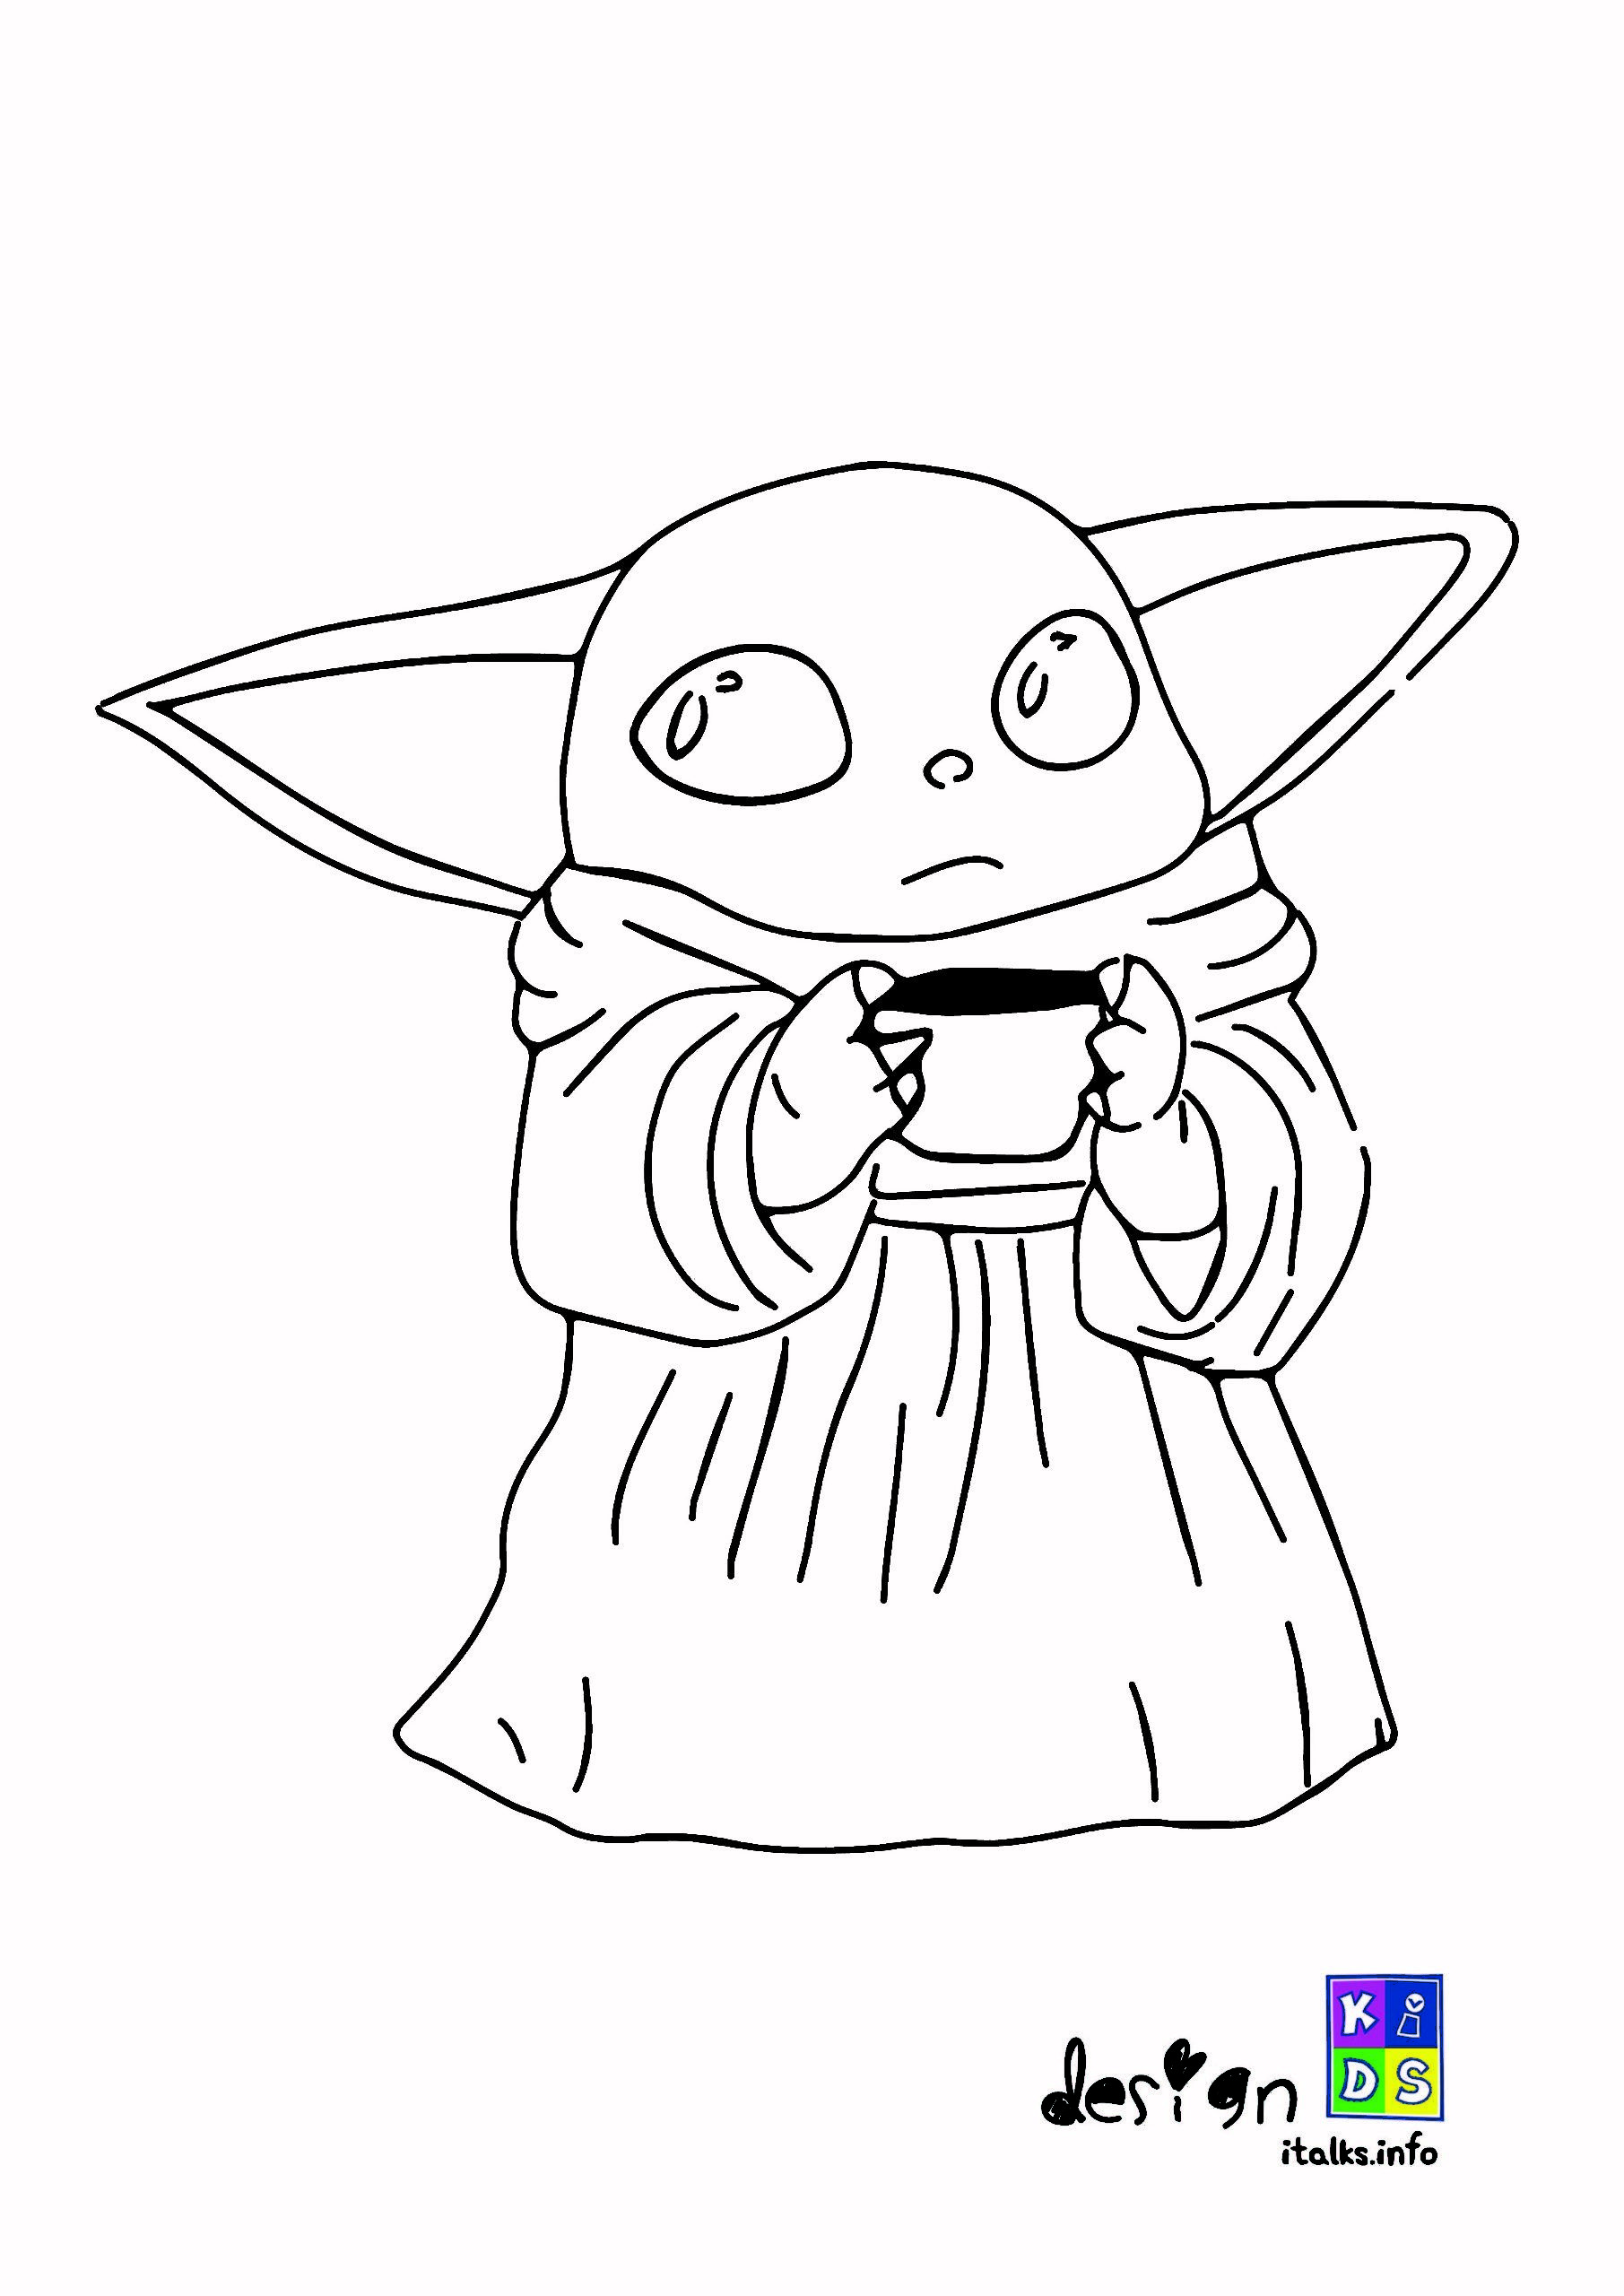 Baby Yoda coloring page Designkids Only For Kids di 2020